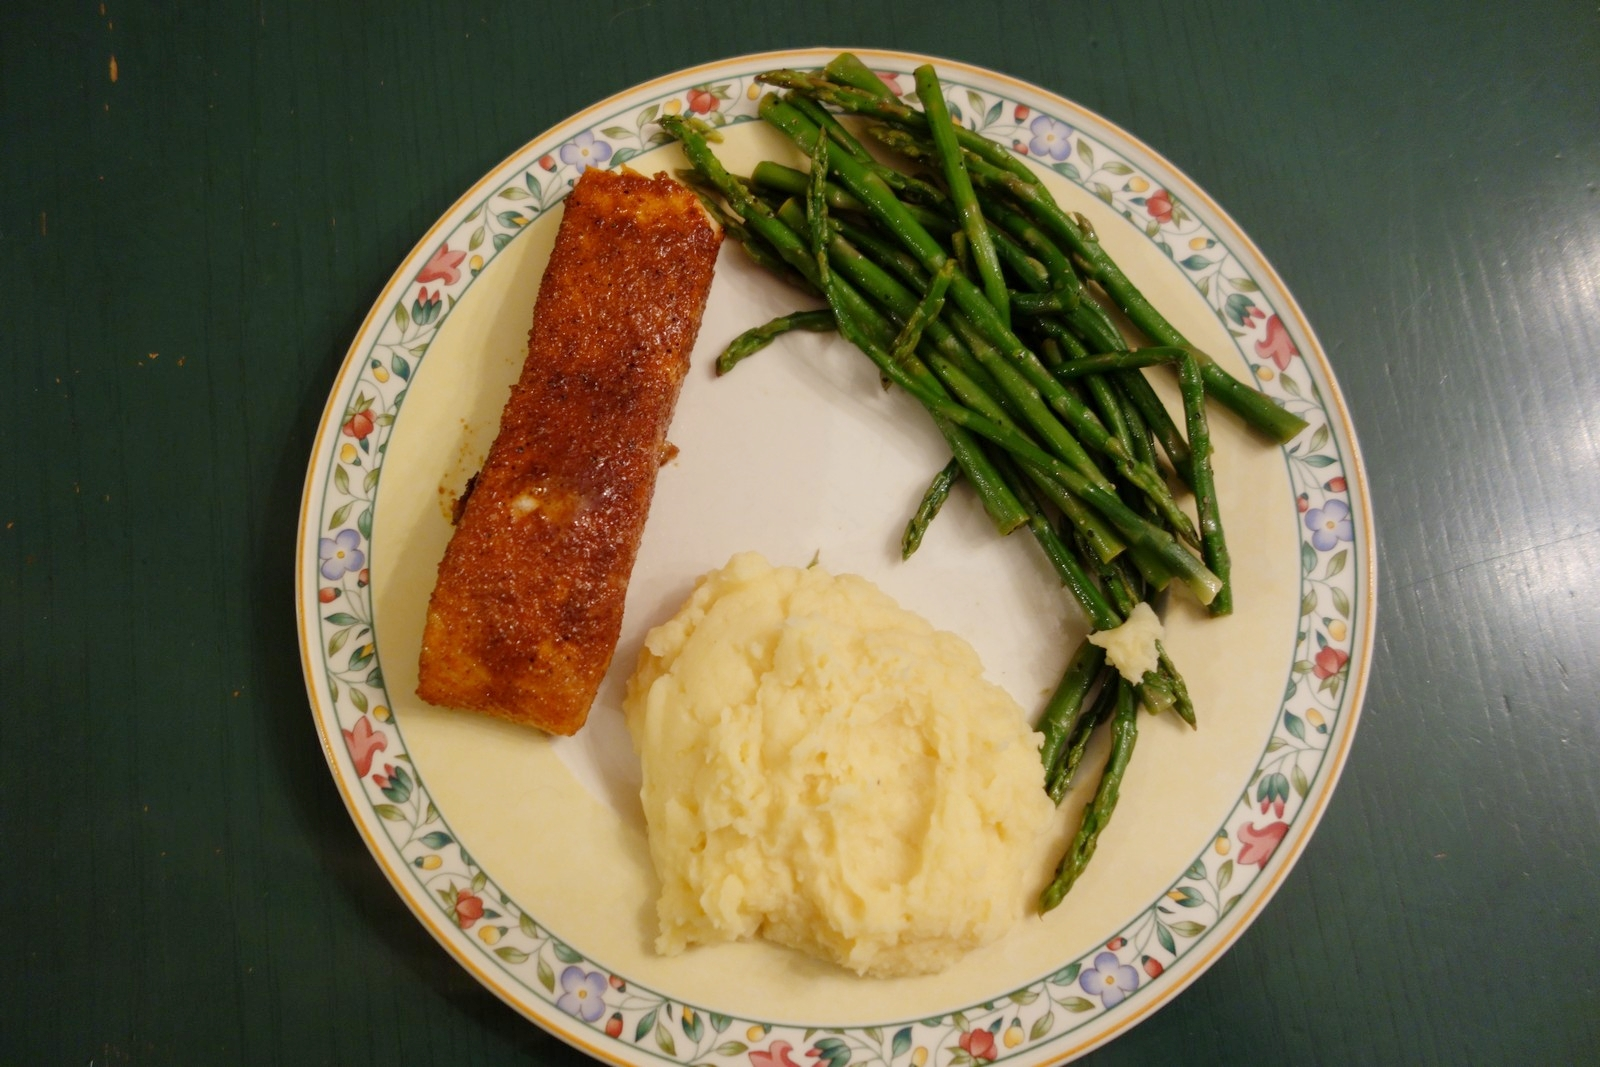 I use a food thermometer to ensure the salmon is always juicy, flaky, and flavorful.